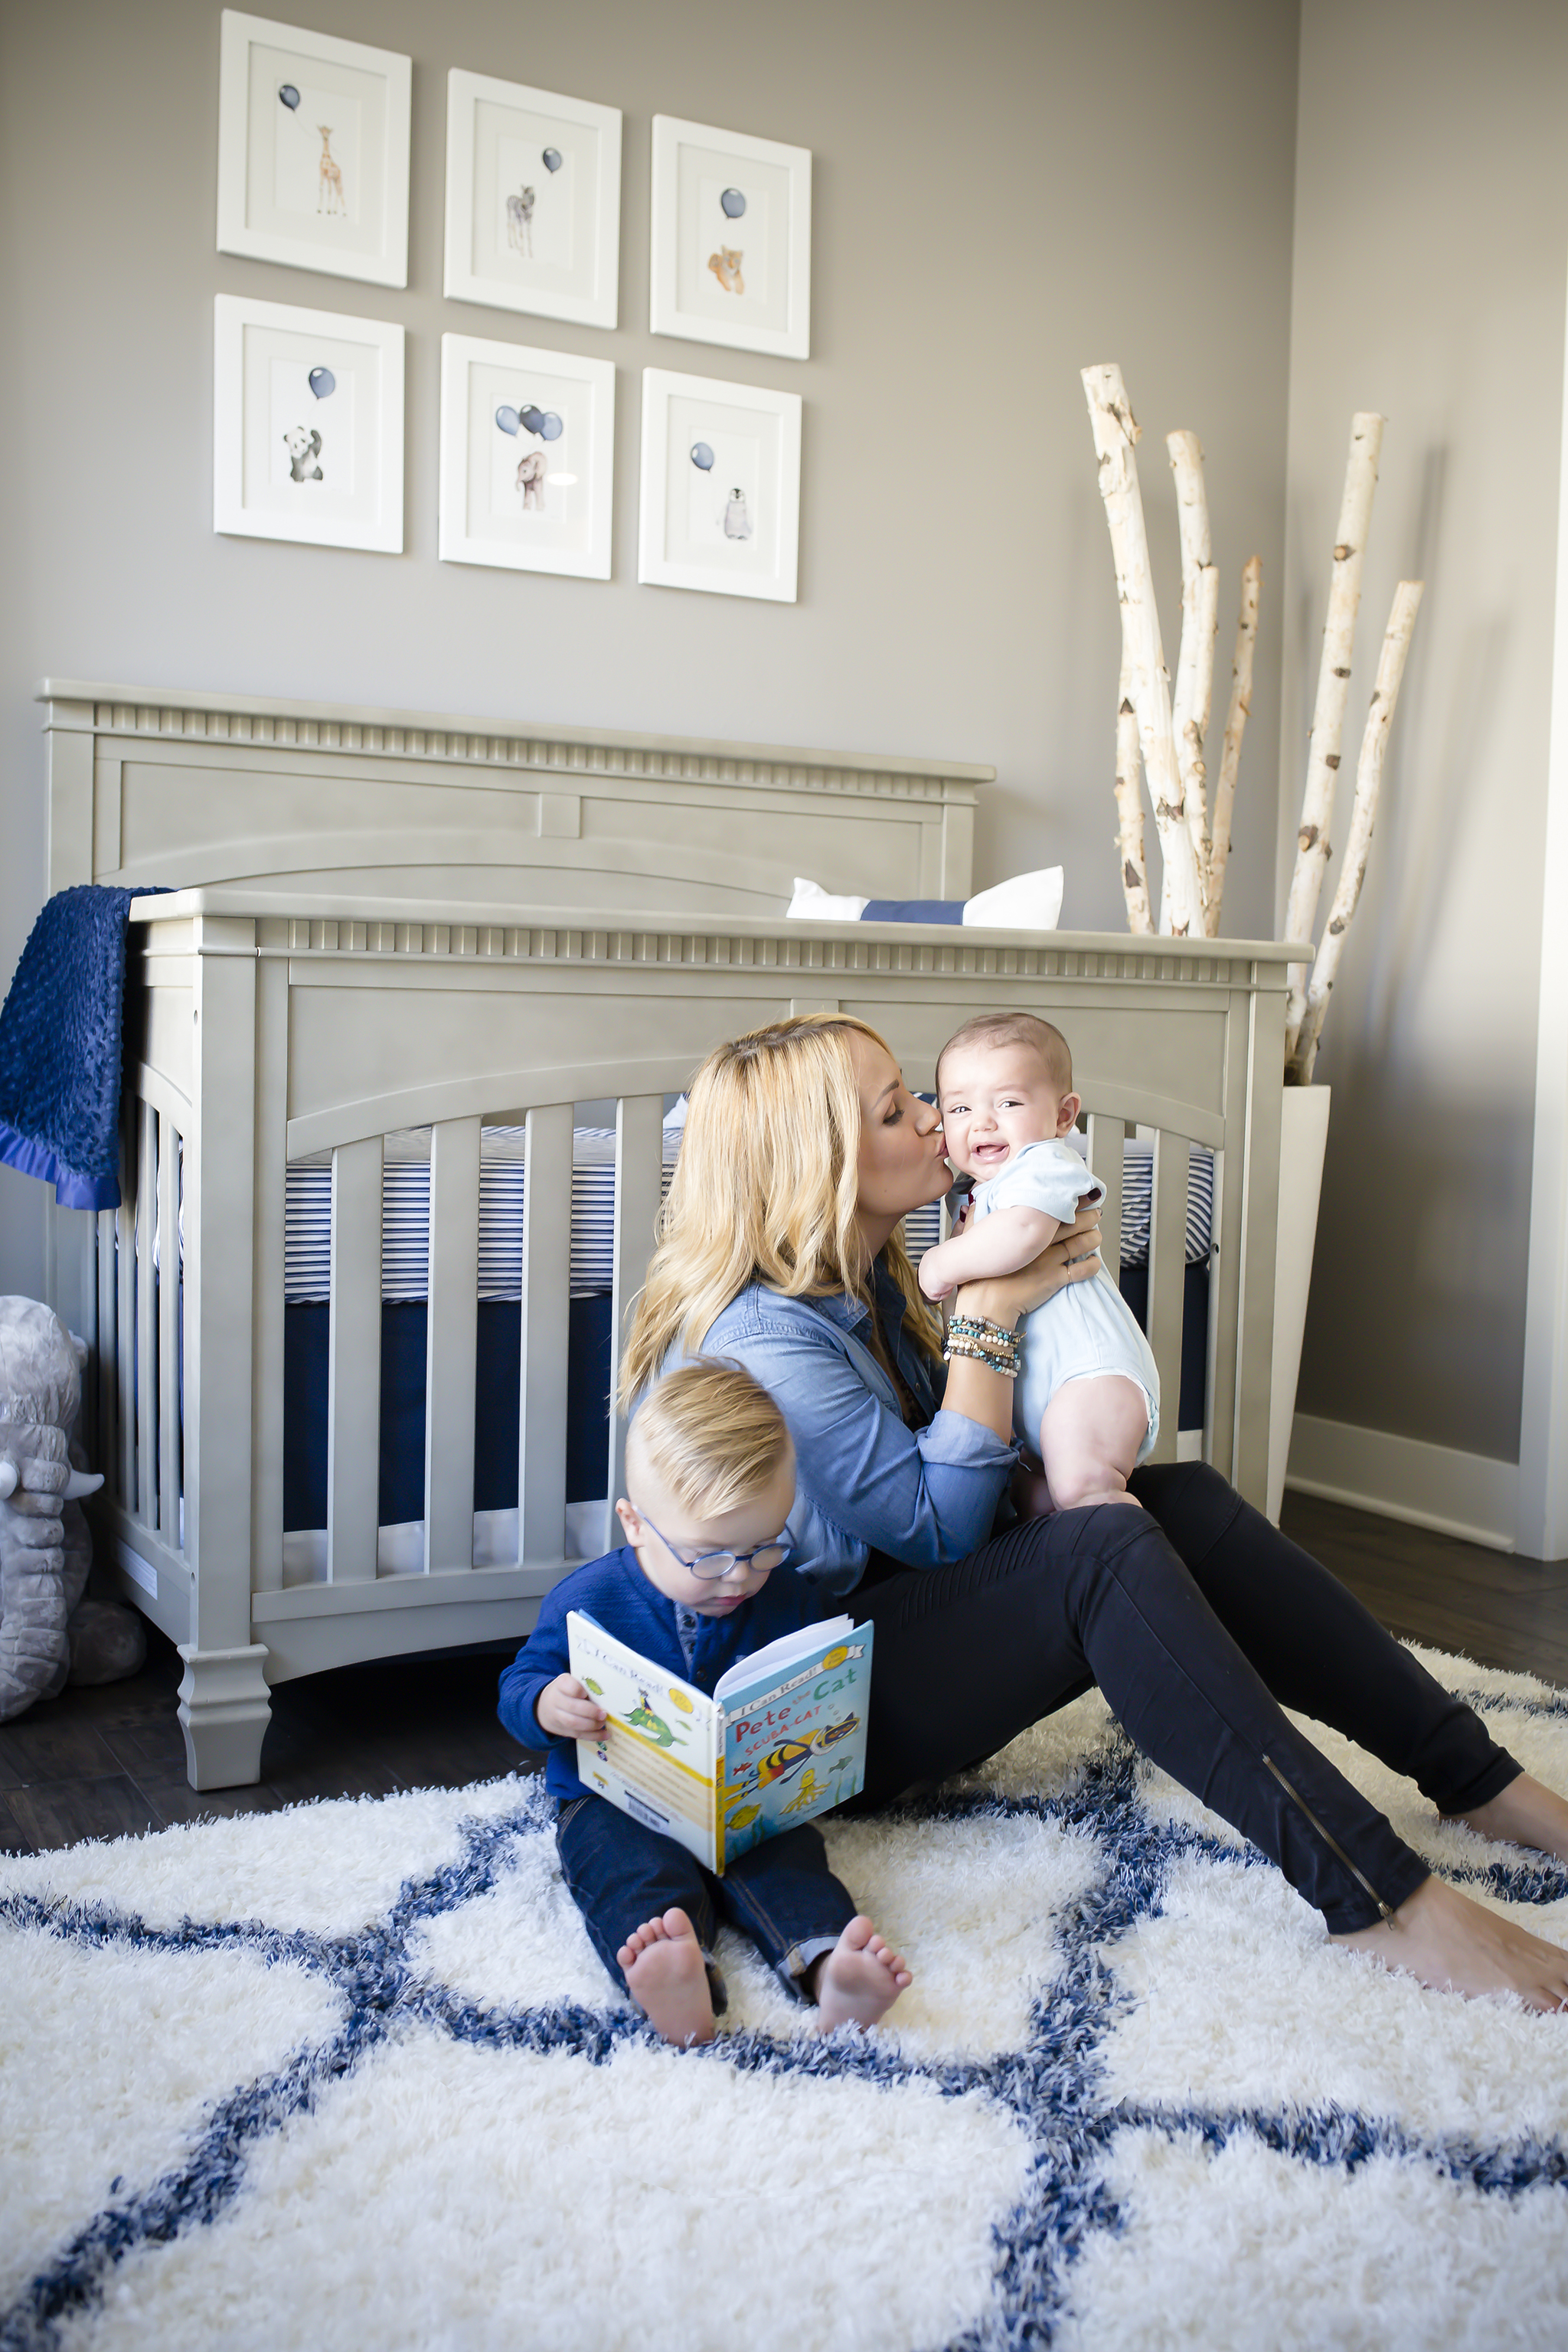 Jenn Brown and Wes Chatham's Nursery